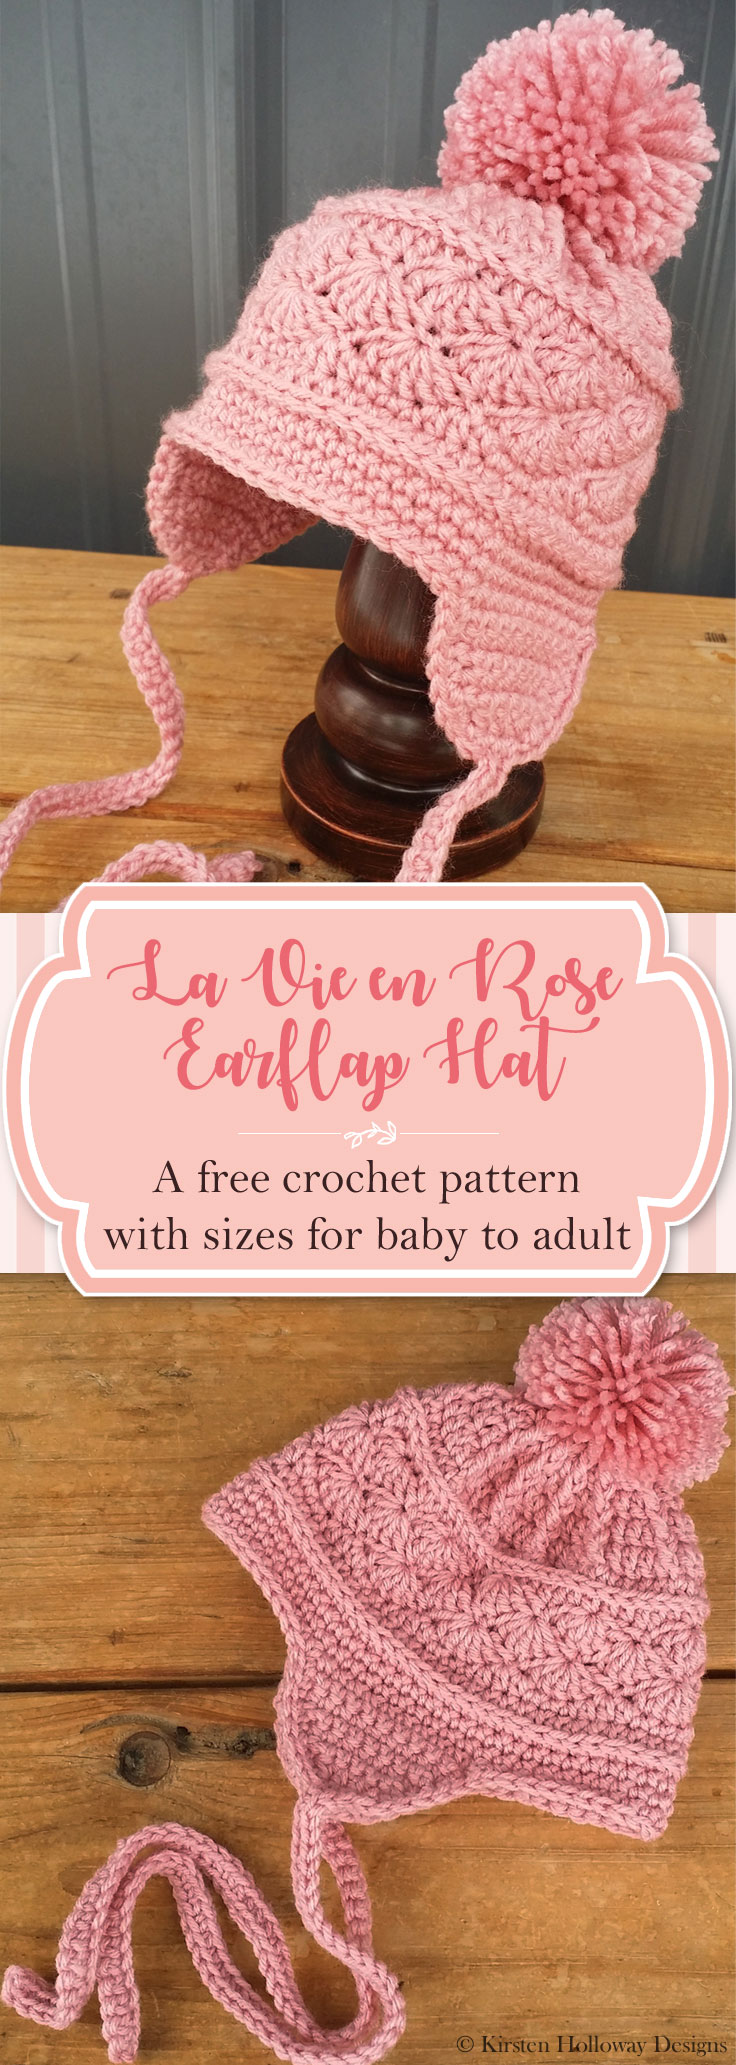 601c8f1923c Pattern - La Vie en Rose Earflap Hat - Kirsten Holloway Designs